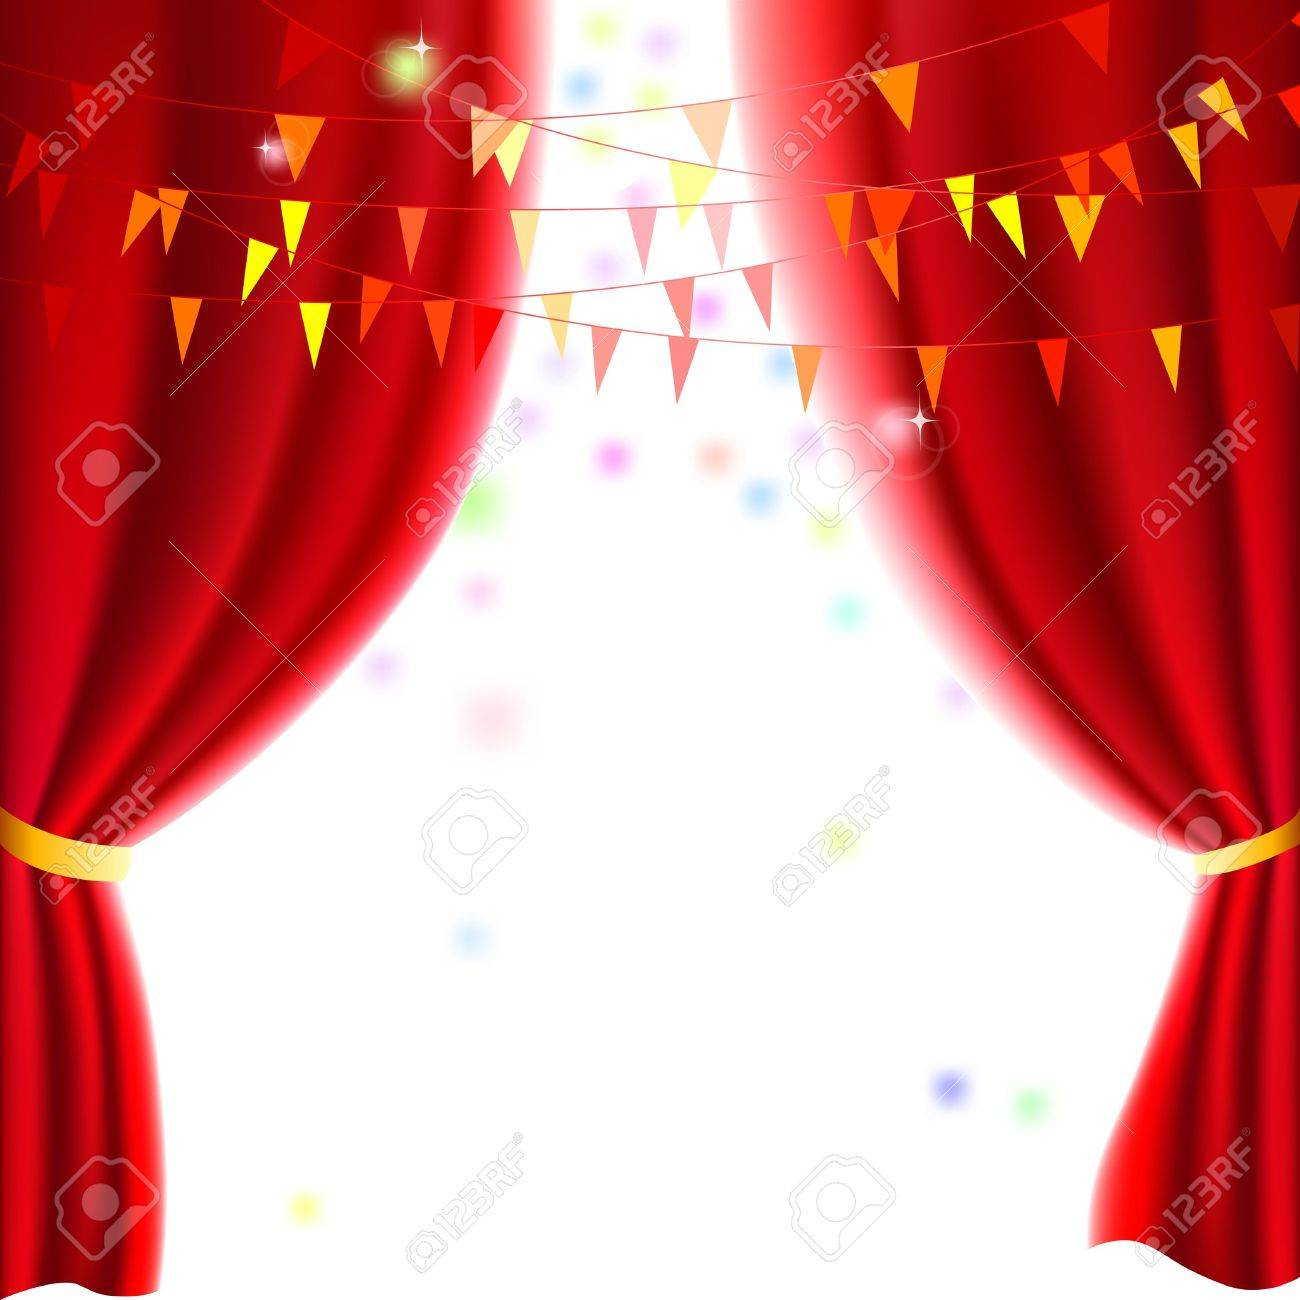 Theater curtains download free vector art stock graphics amp images - Movie Or Theatre Curtain With A Party Flags Stock Vector 14088187